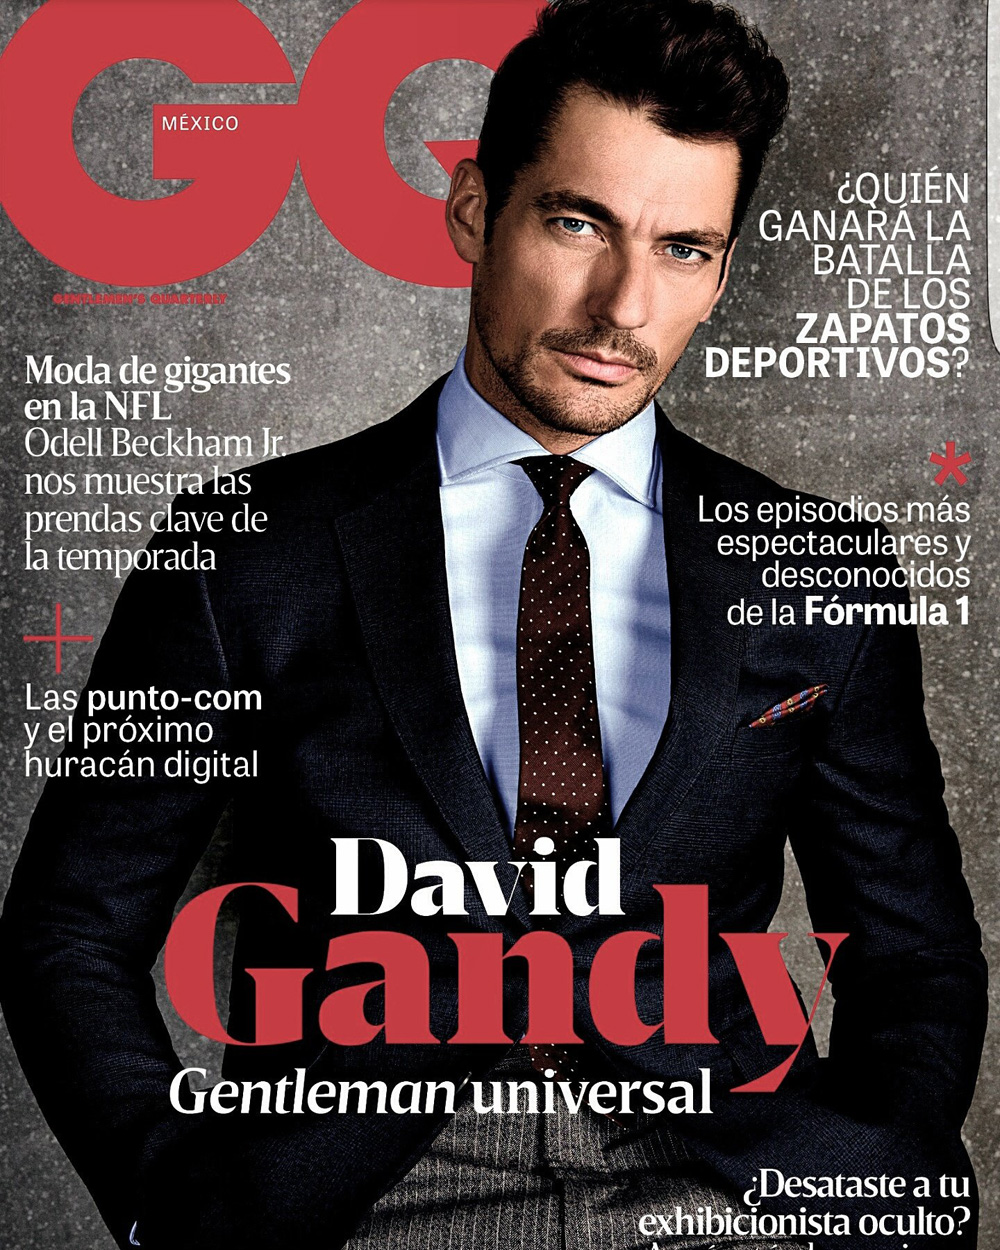 """""""English Gentleman"""" Top model David Gandy fronts new cover for GQ Mexico October 2016 Issue the story photography by Richard Ramos and styled by Lorna McGee. Art Direction by Fernando Carrillo and Alonso Parra and grooming by Larry King."""